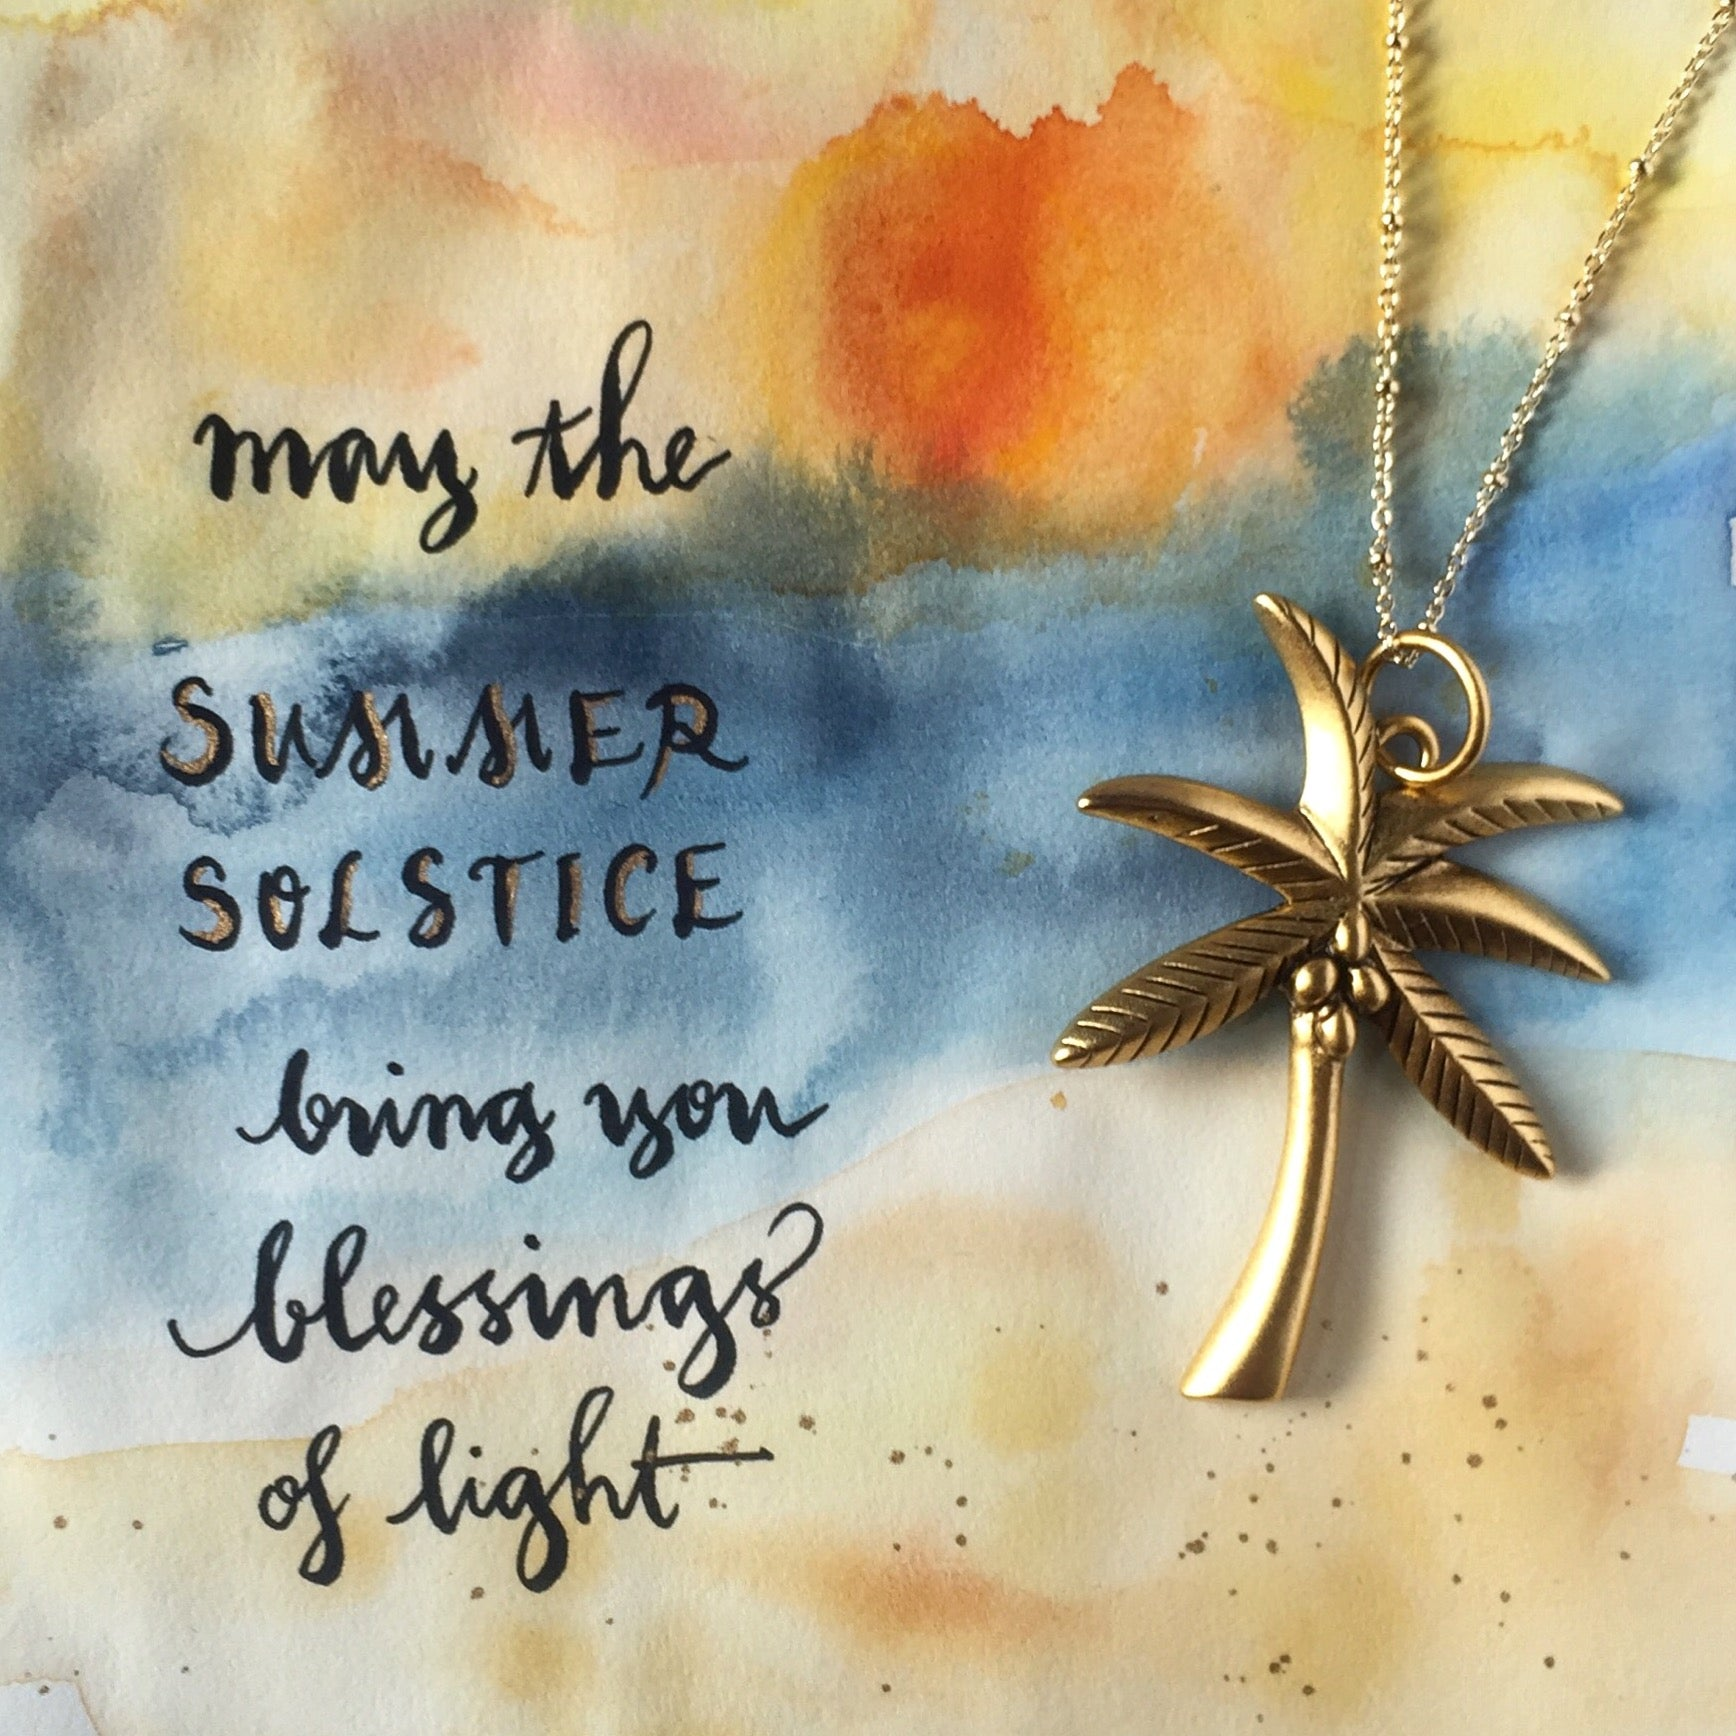 #SequinSayings - Happy Summer Solstice!